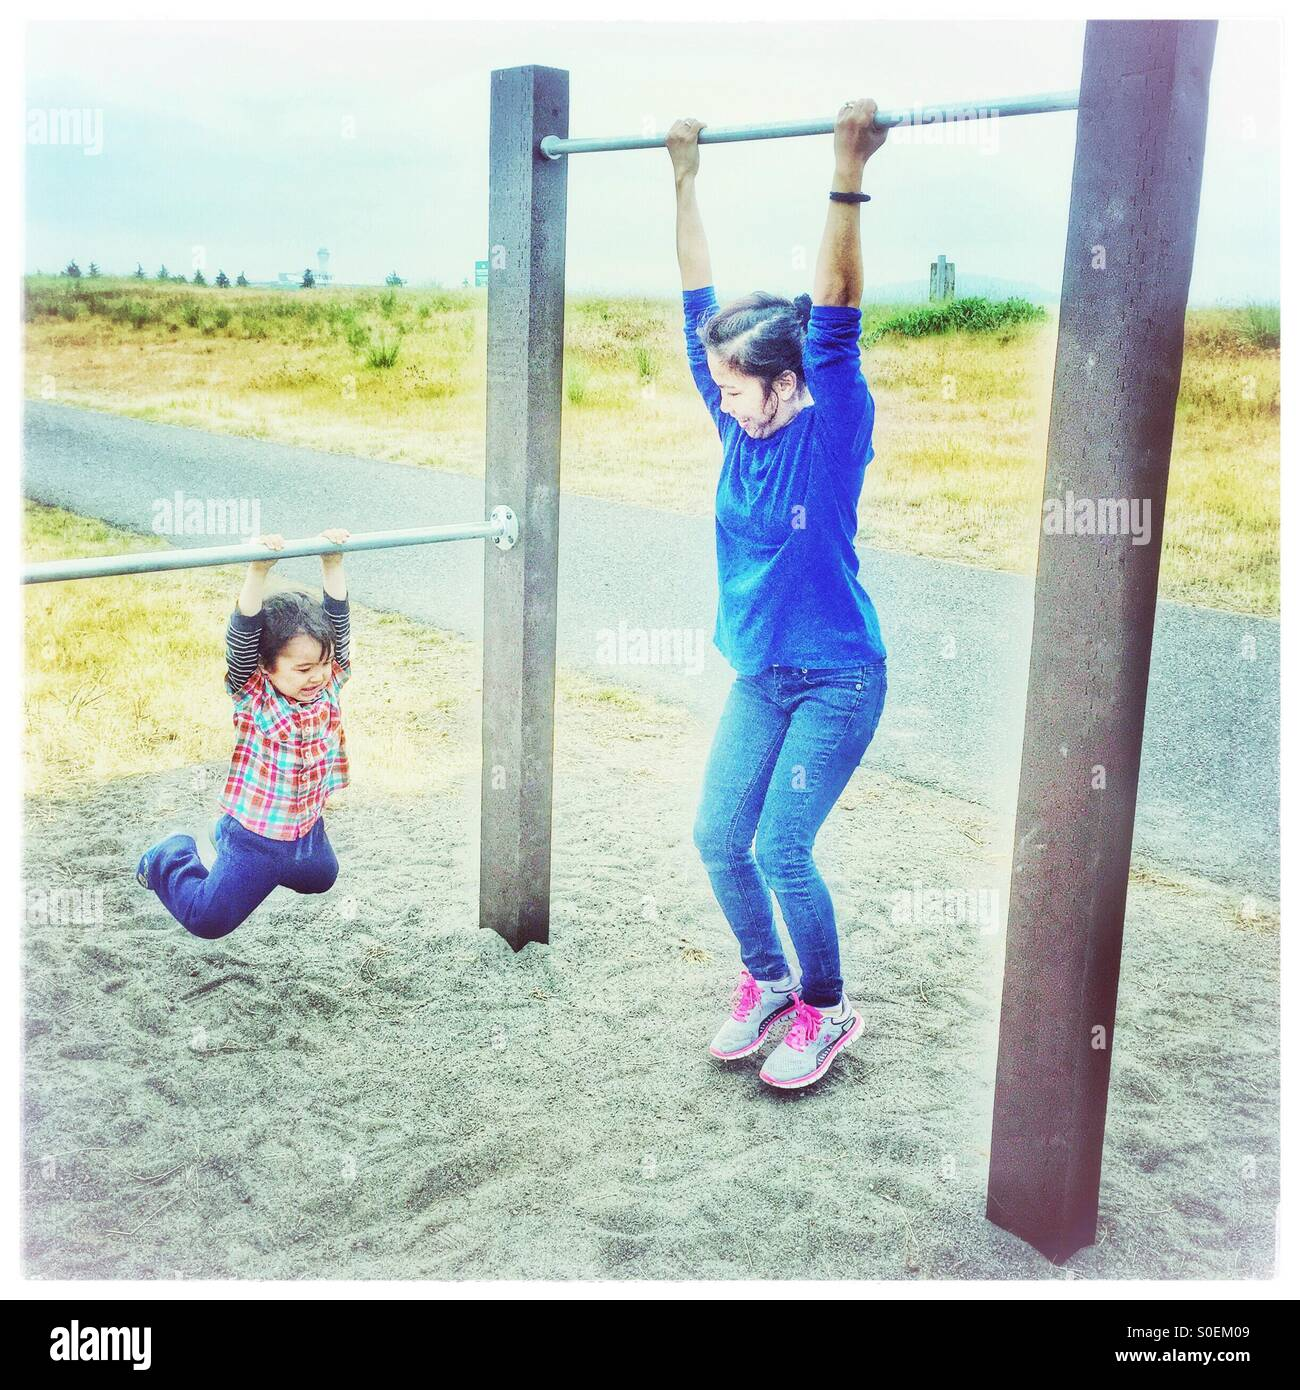 A mother and child each find adjoining pull-up bars just their size for exercise and playtime fun outdoors near - Stock Image